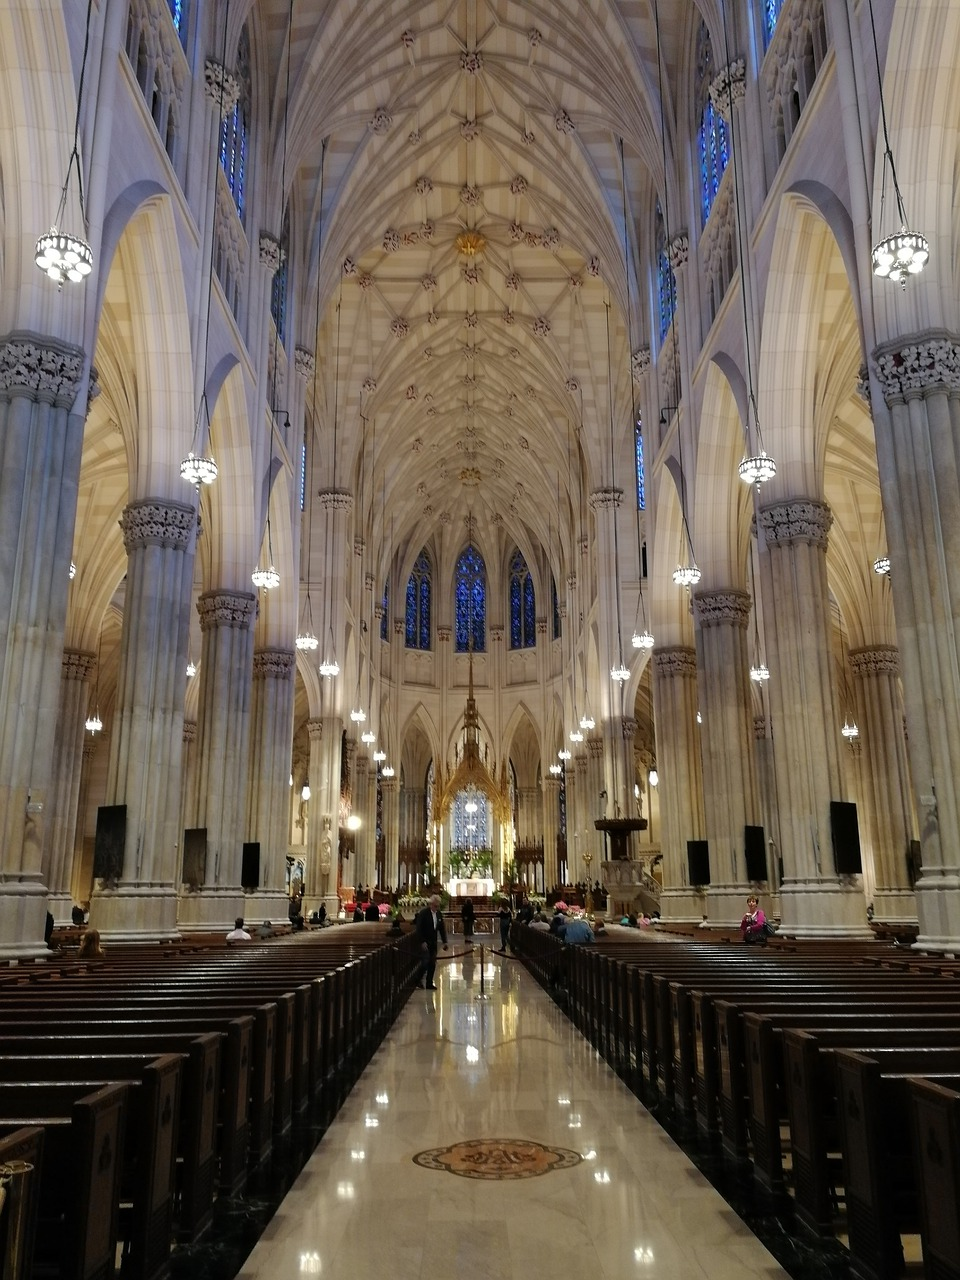 St Patrick's Cathedral Seats 2400